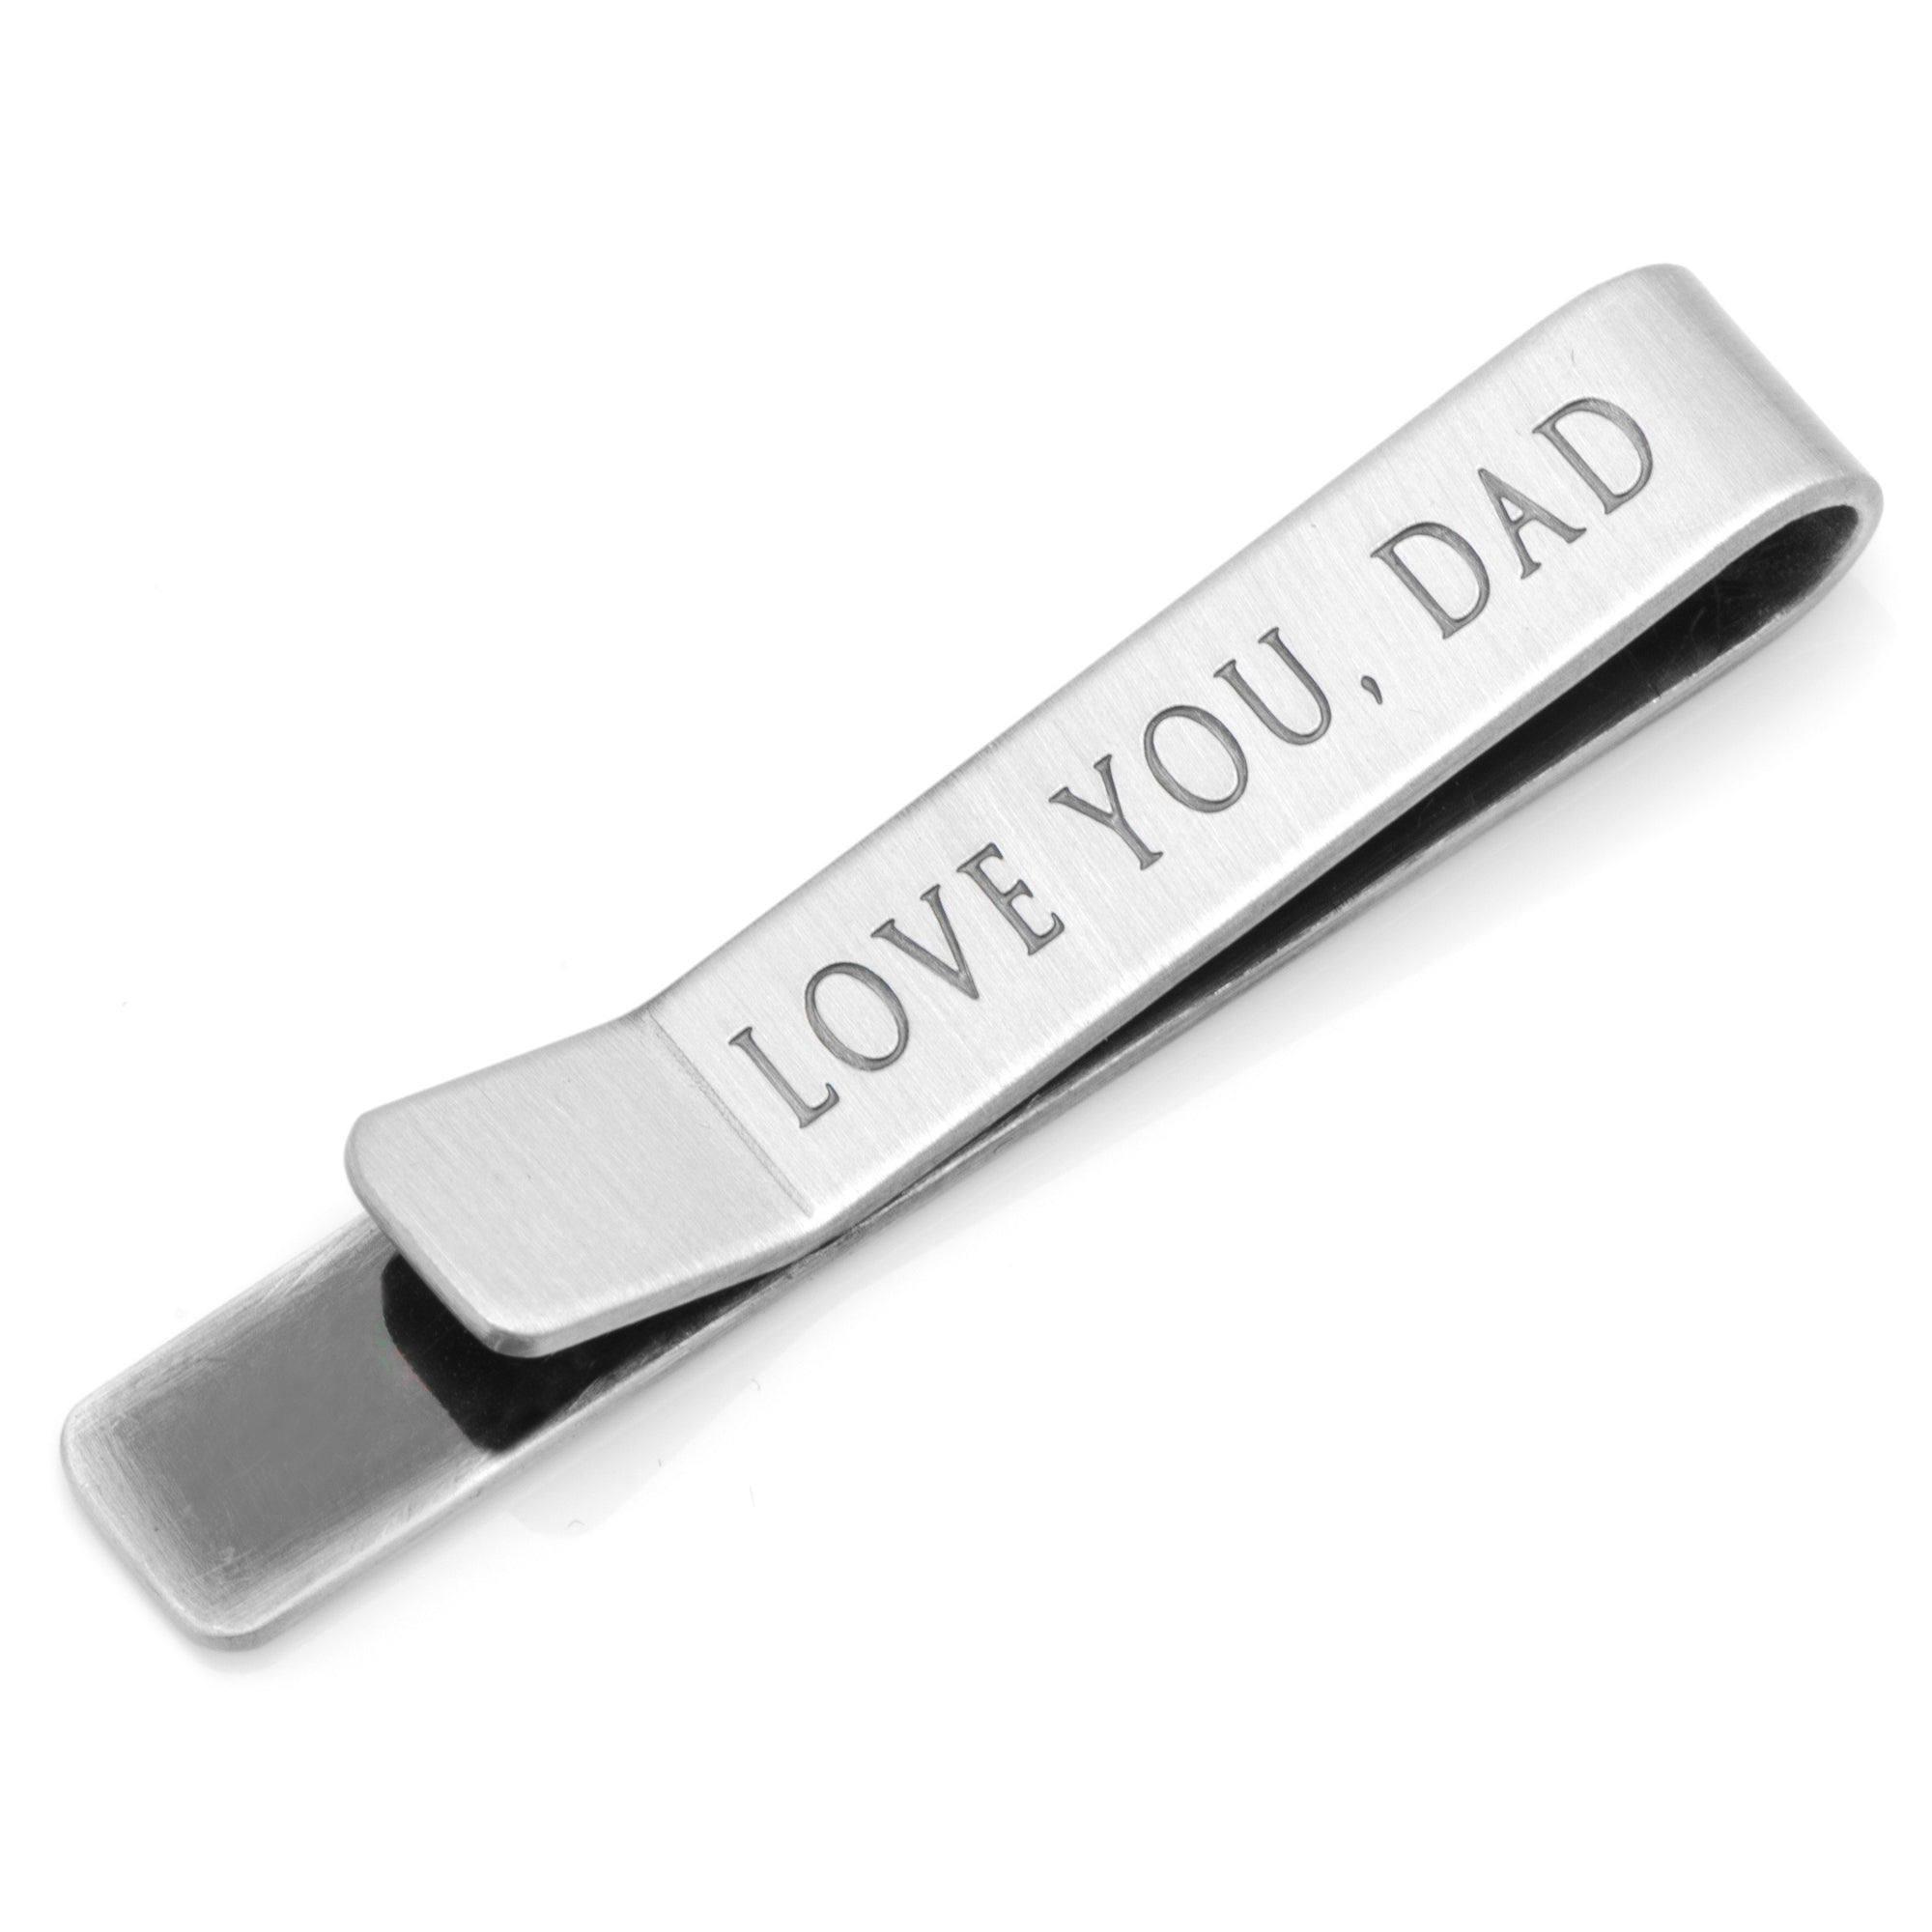 "Brushed Silver ""Love You, Dad"" Tie Clip, Tie Bars, Cuffed.com.au, TC1096, $25.00"